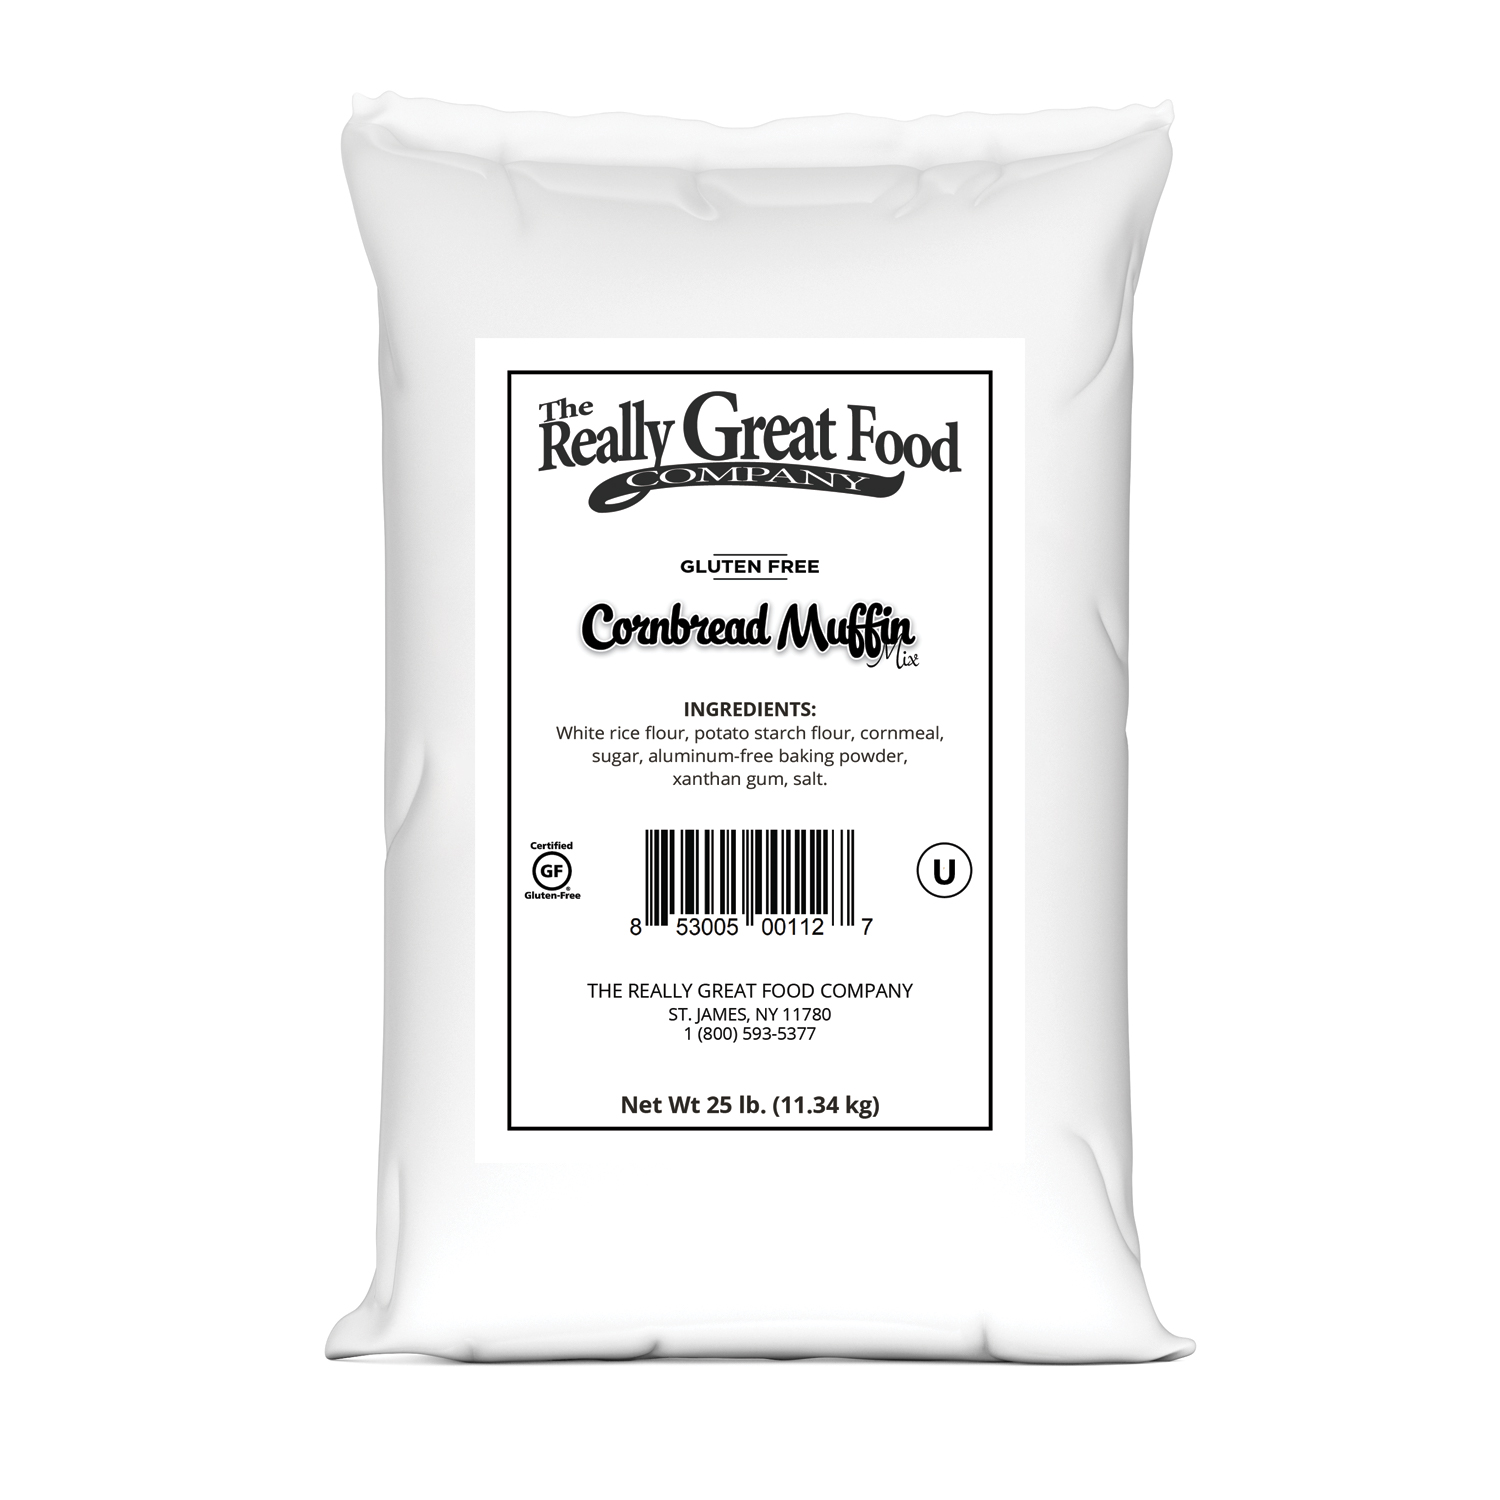 Gluten Free Cornbread Muffin Mix - 25 lb Bag